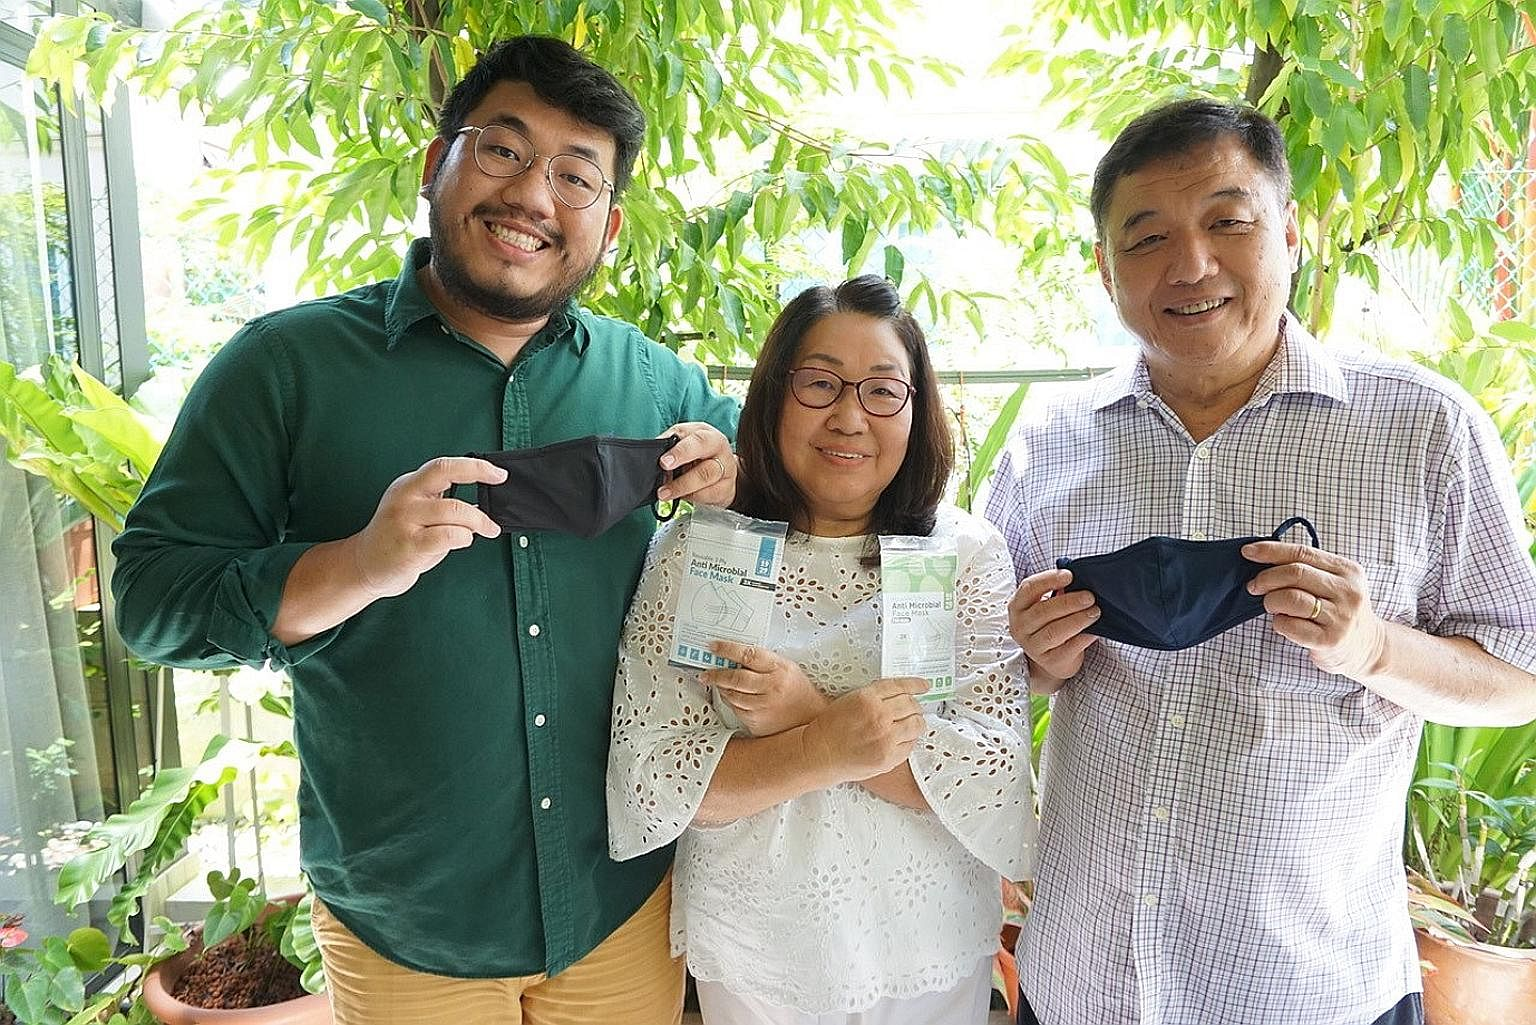 Mr Keenon Lee with his parents, Madam Ng Cheng Choon and Mr Steven Lee. Their family's company, 1929 Mask, makes reusable masks which are also donated to migrant workers and the vulnerable elderly.